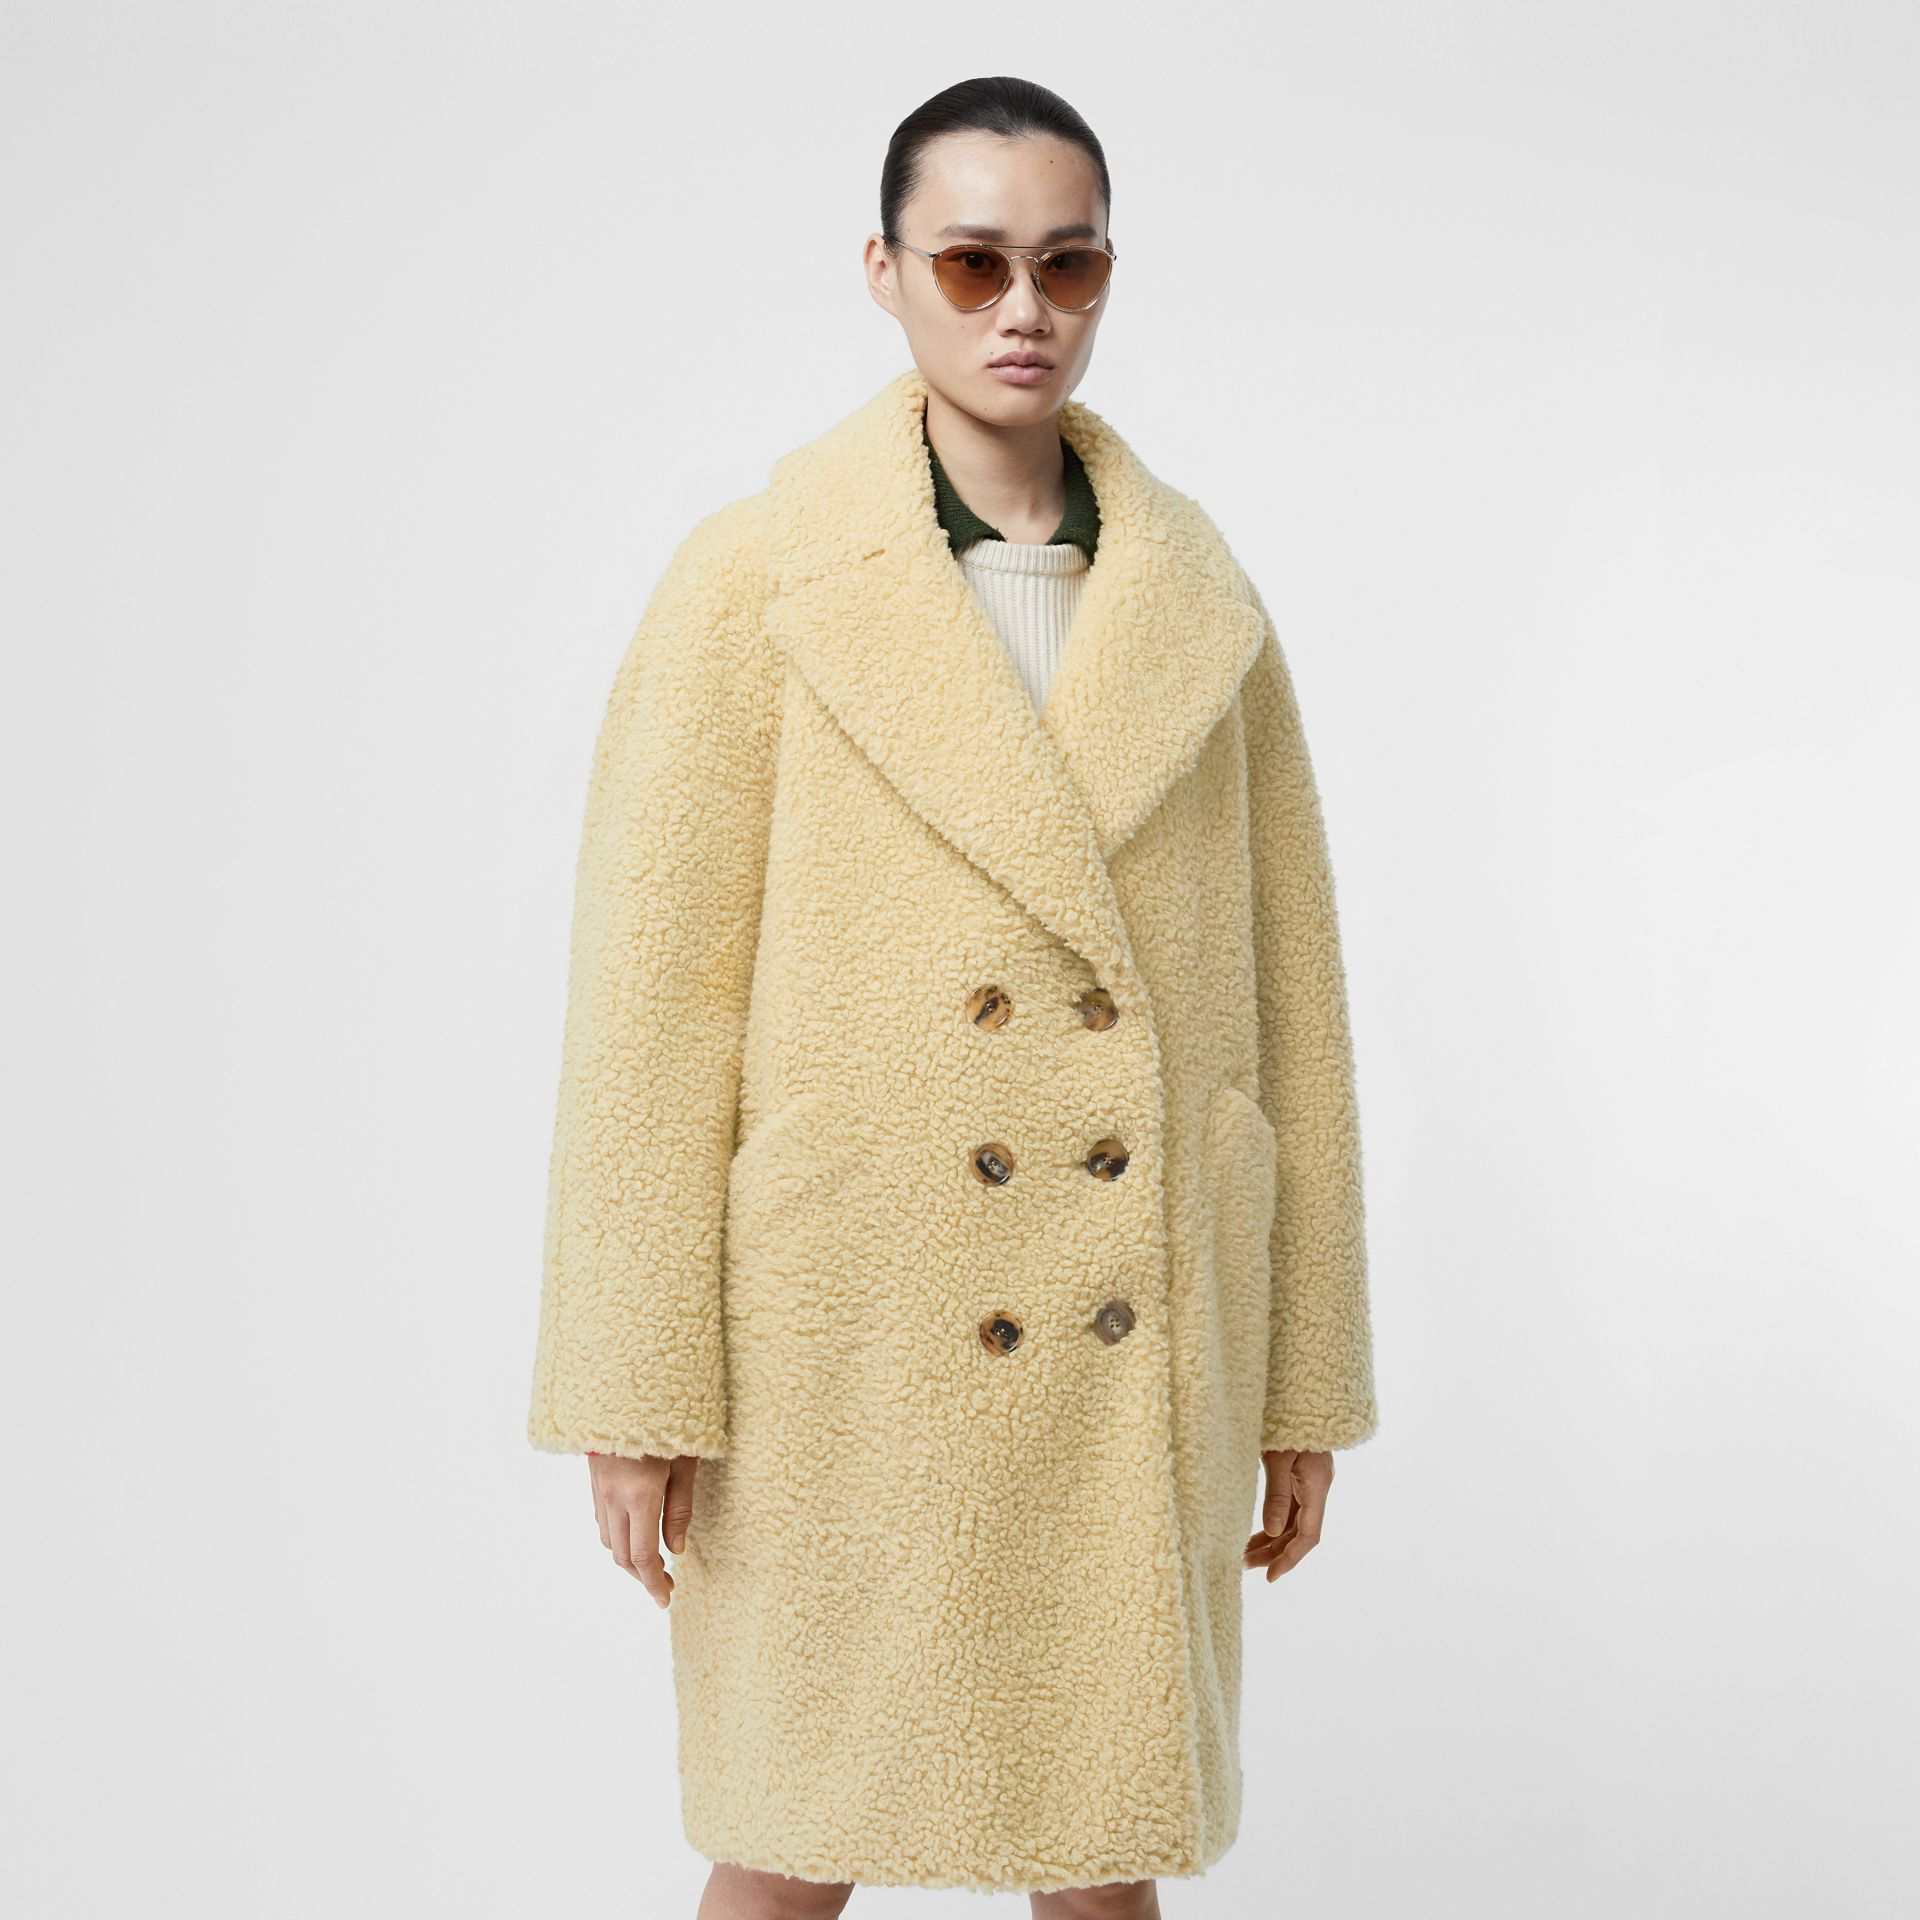 Faux Shearling Double-breasted Oversized Coat in Camomile - Women | Burberry United States - gallery image 5